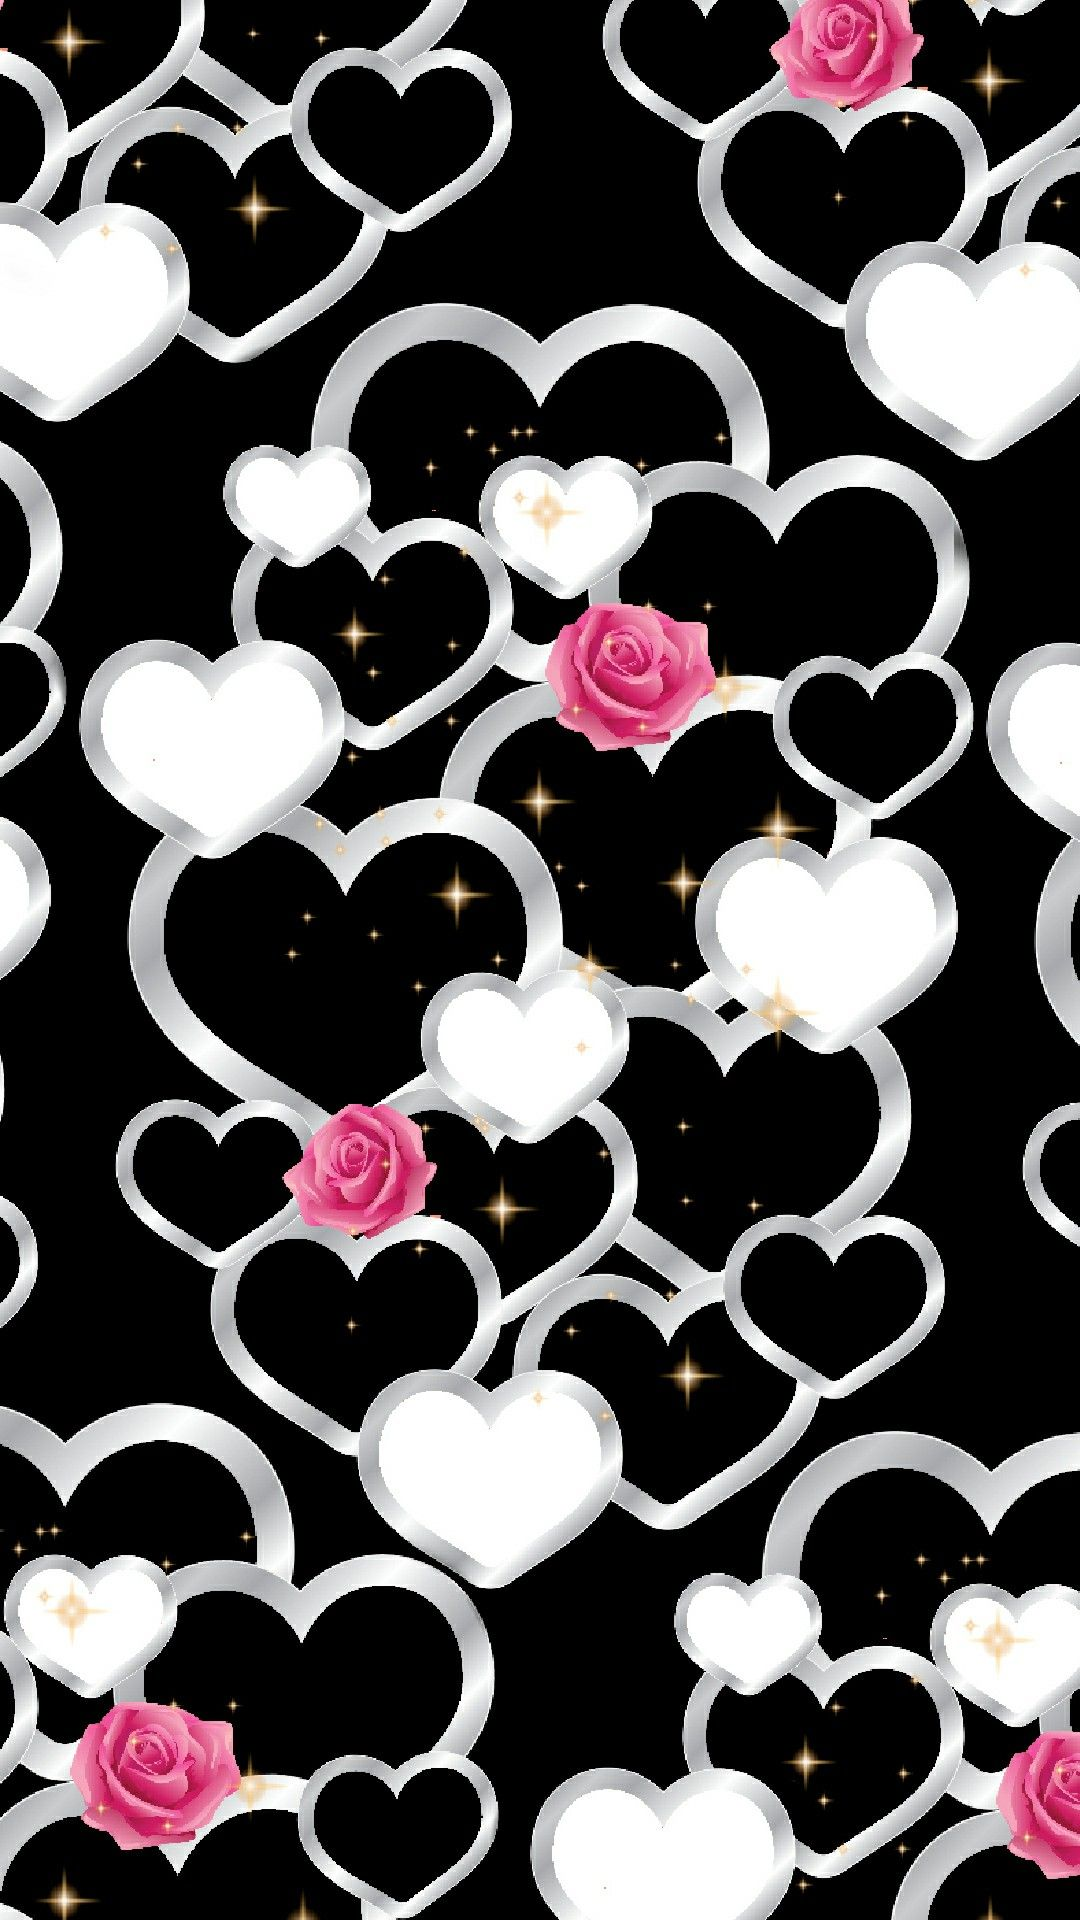 Heart & Roses Wallpaper By Artist Unknown